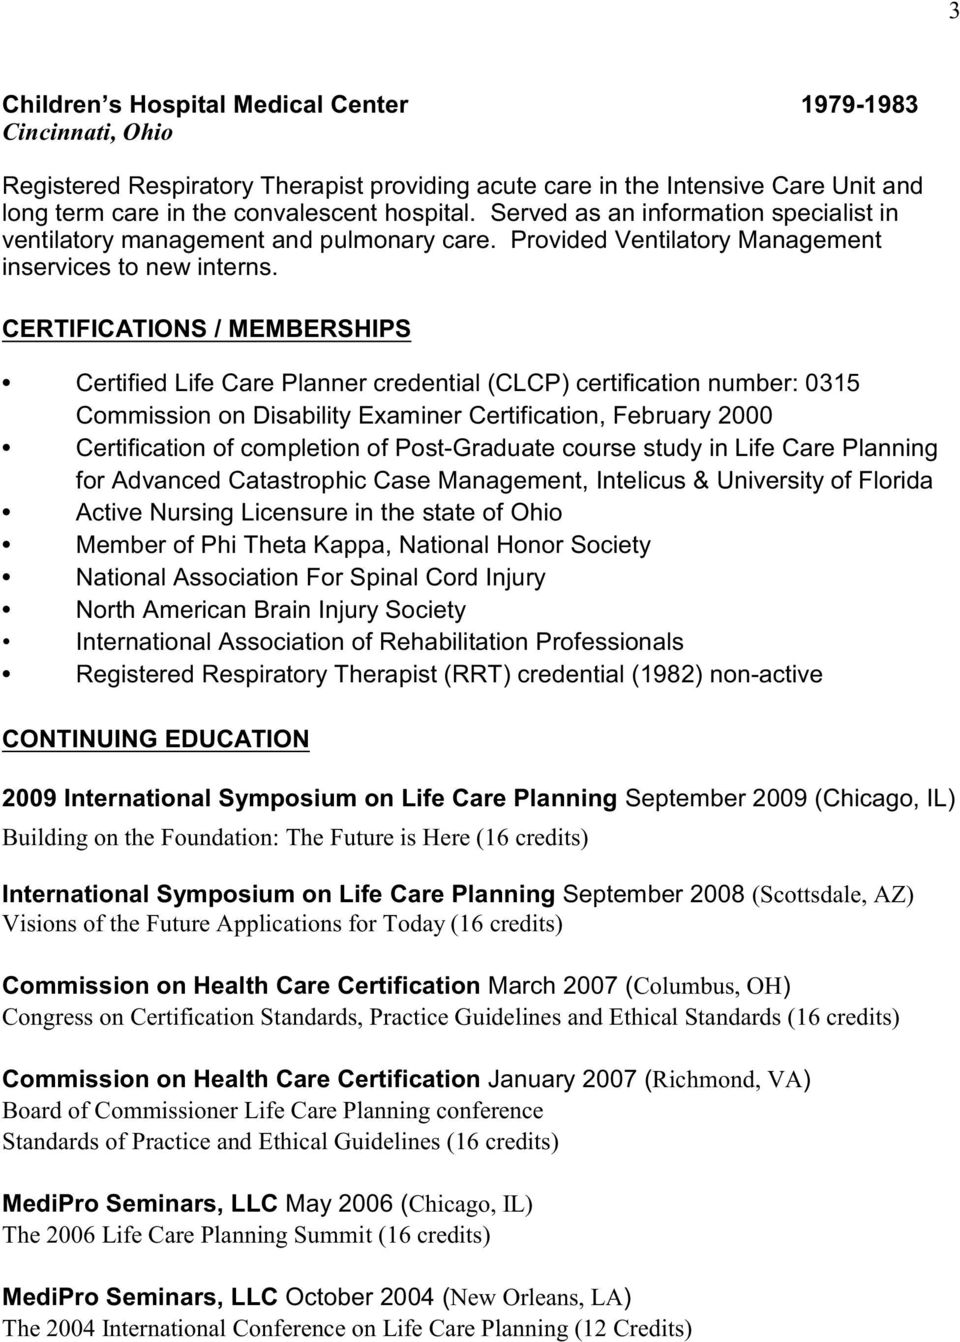 CERTIFICATIONS / MEMBERSHIPS Certified Life Care Planner credential (CLCP) certification number: 0315 Commission on Disability Examiner Certification, February 2000 Certification of completion of